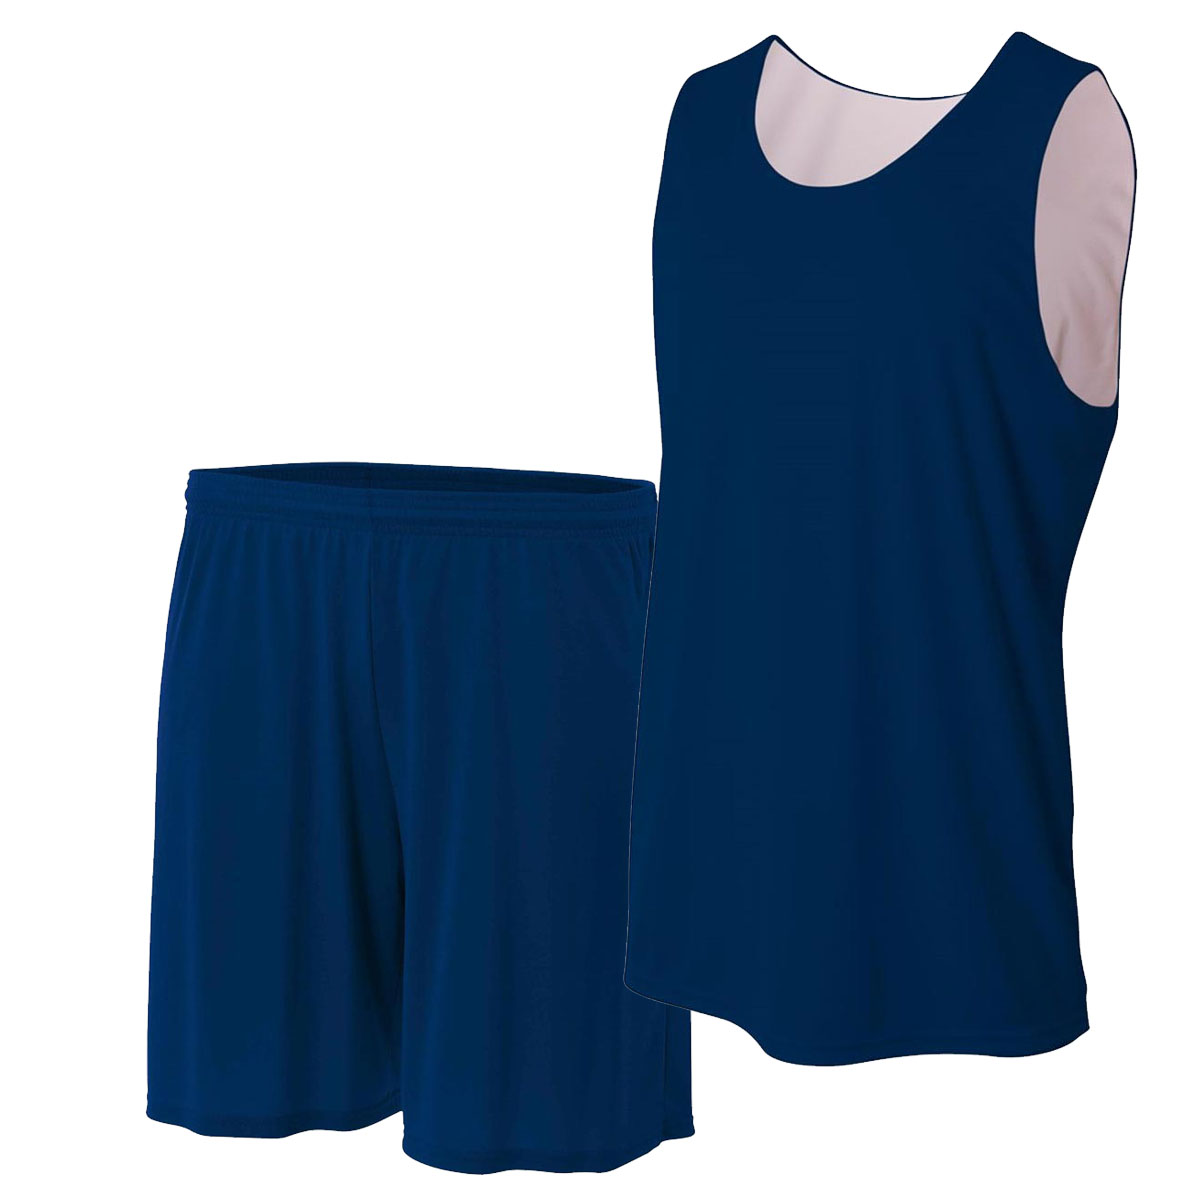 Reversible Basketball Uniforms Manufacturers in Srinagar